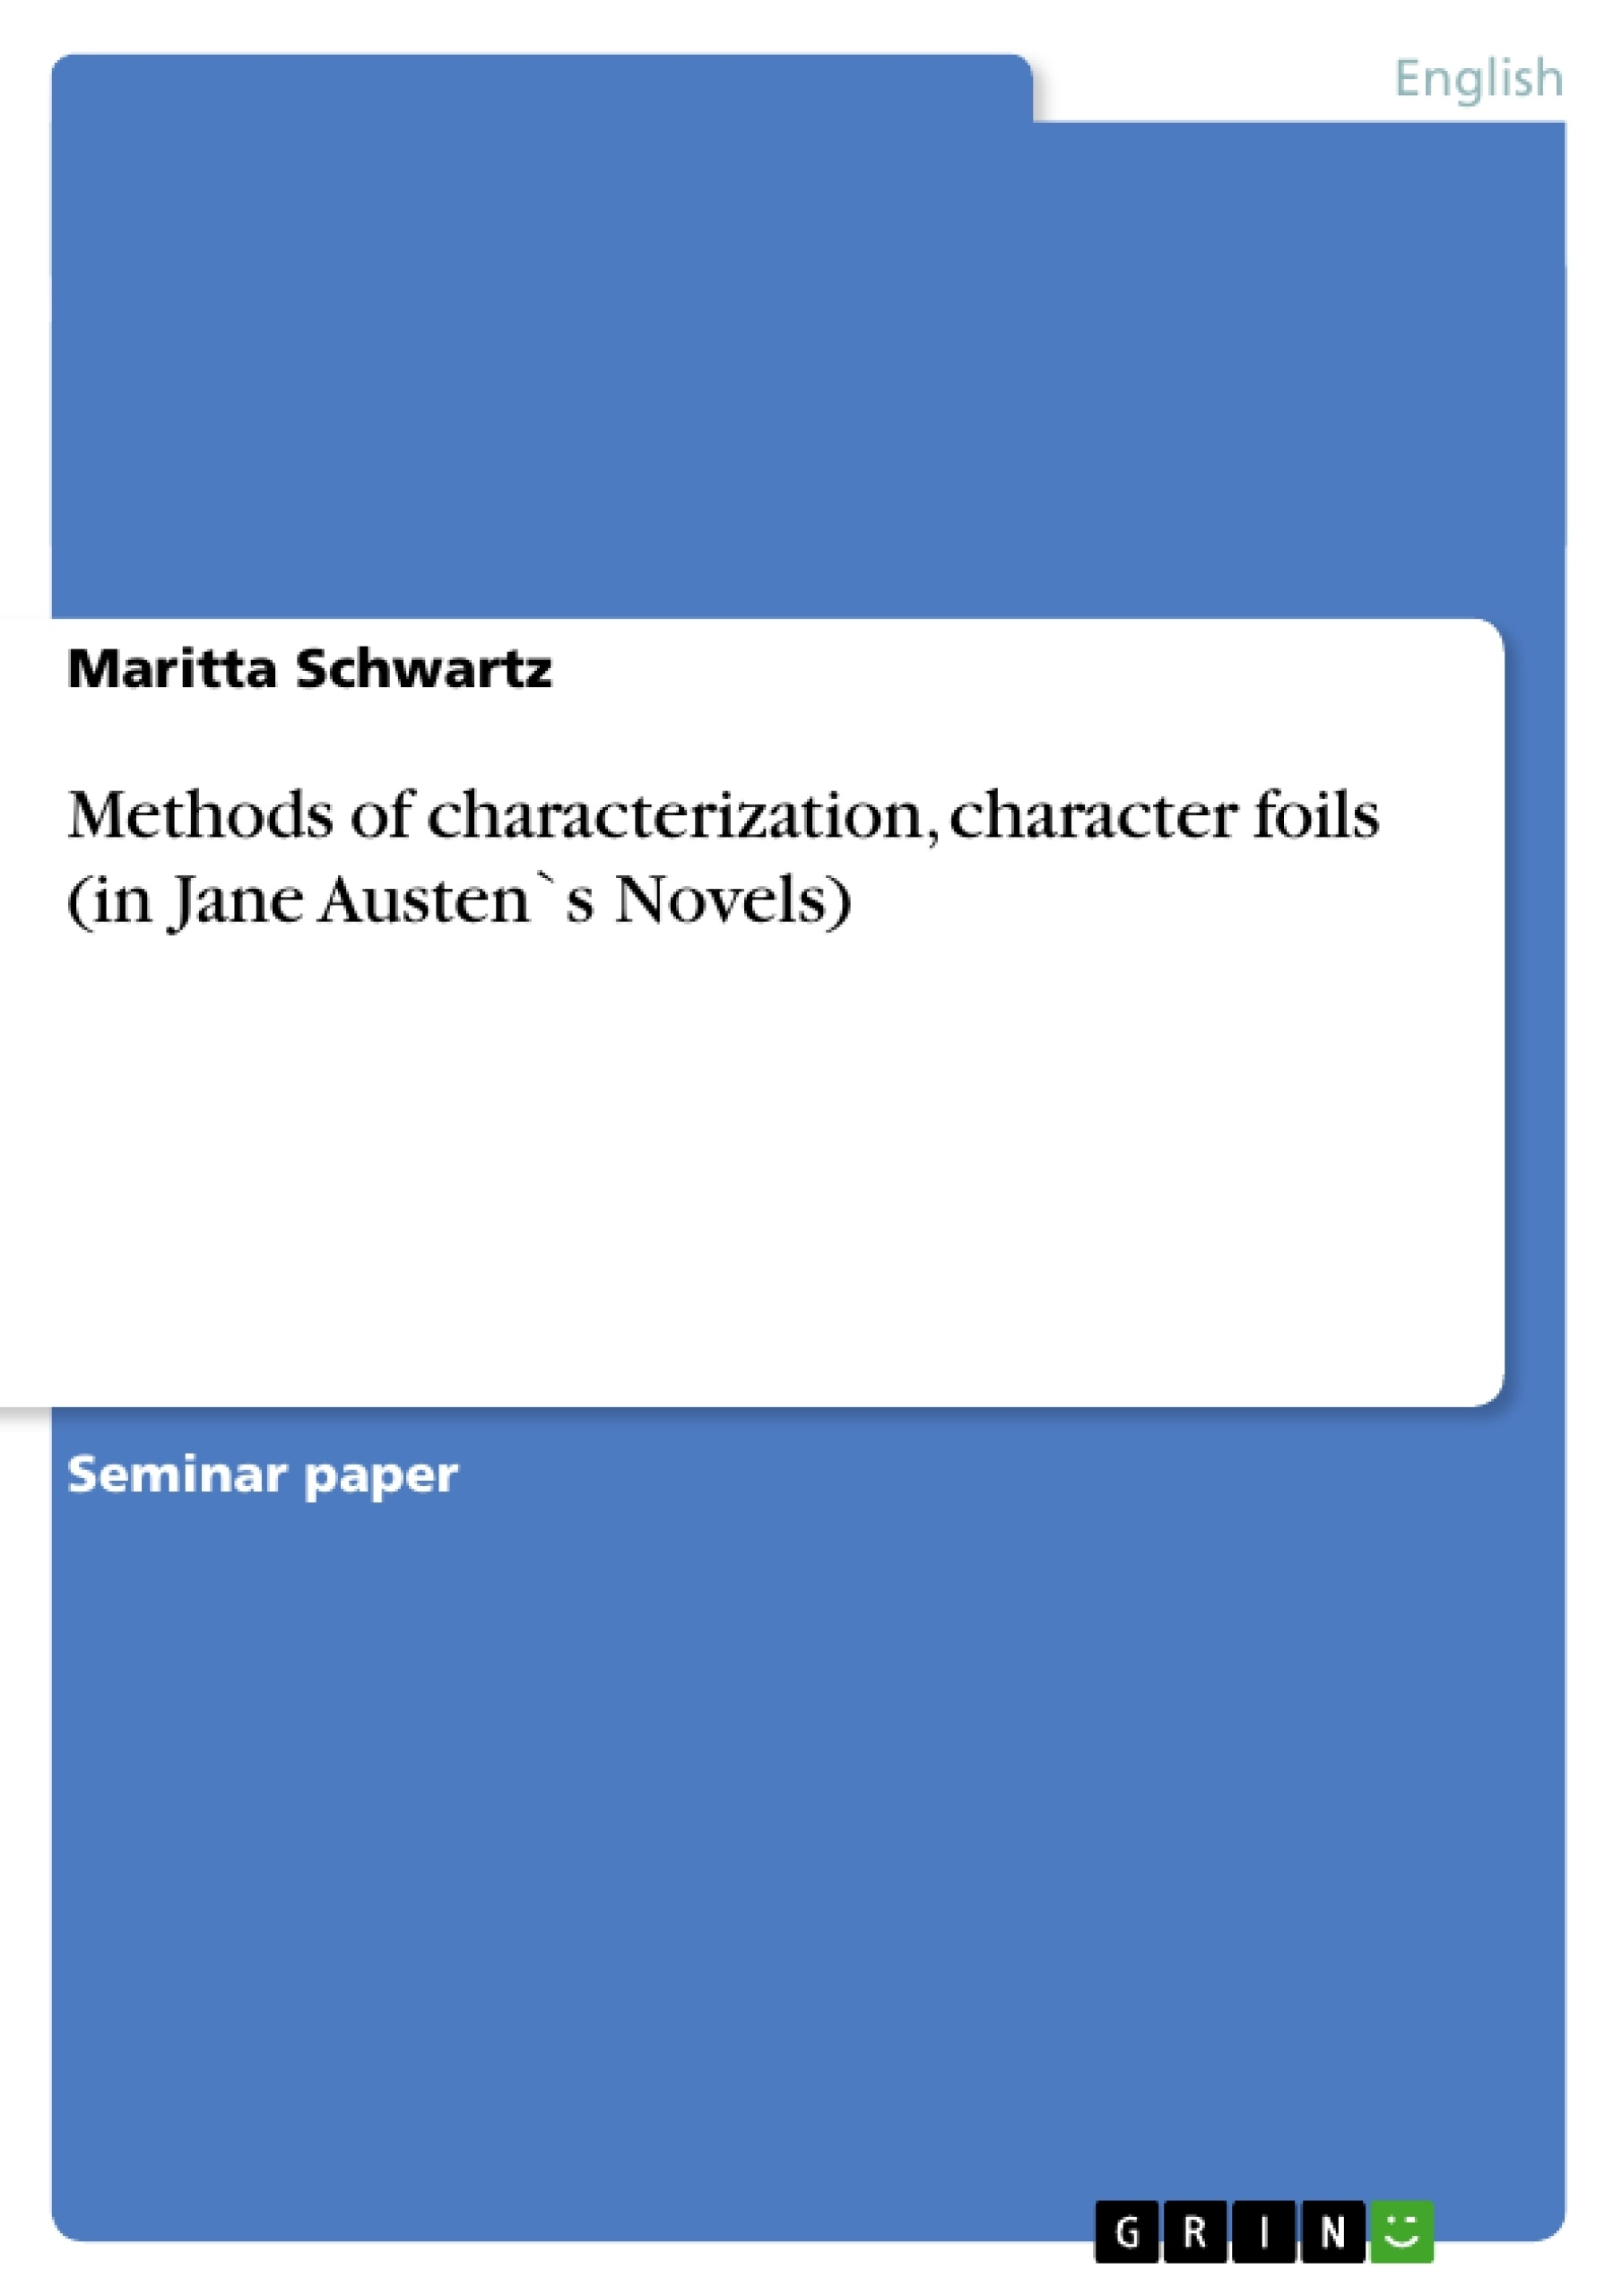 characterization in pride and prejudice essay Pride and prejudice - characters the characters found in the novel, pride and prejudice, by jane austen, are easily contrasted while some characters are likeable, we have others who are seen as silly and petty.